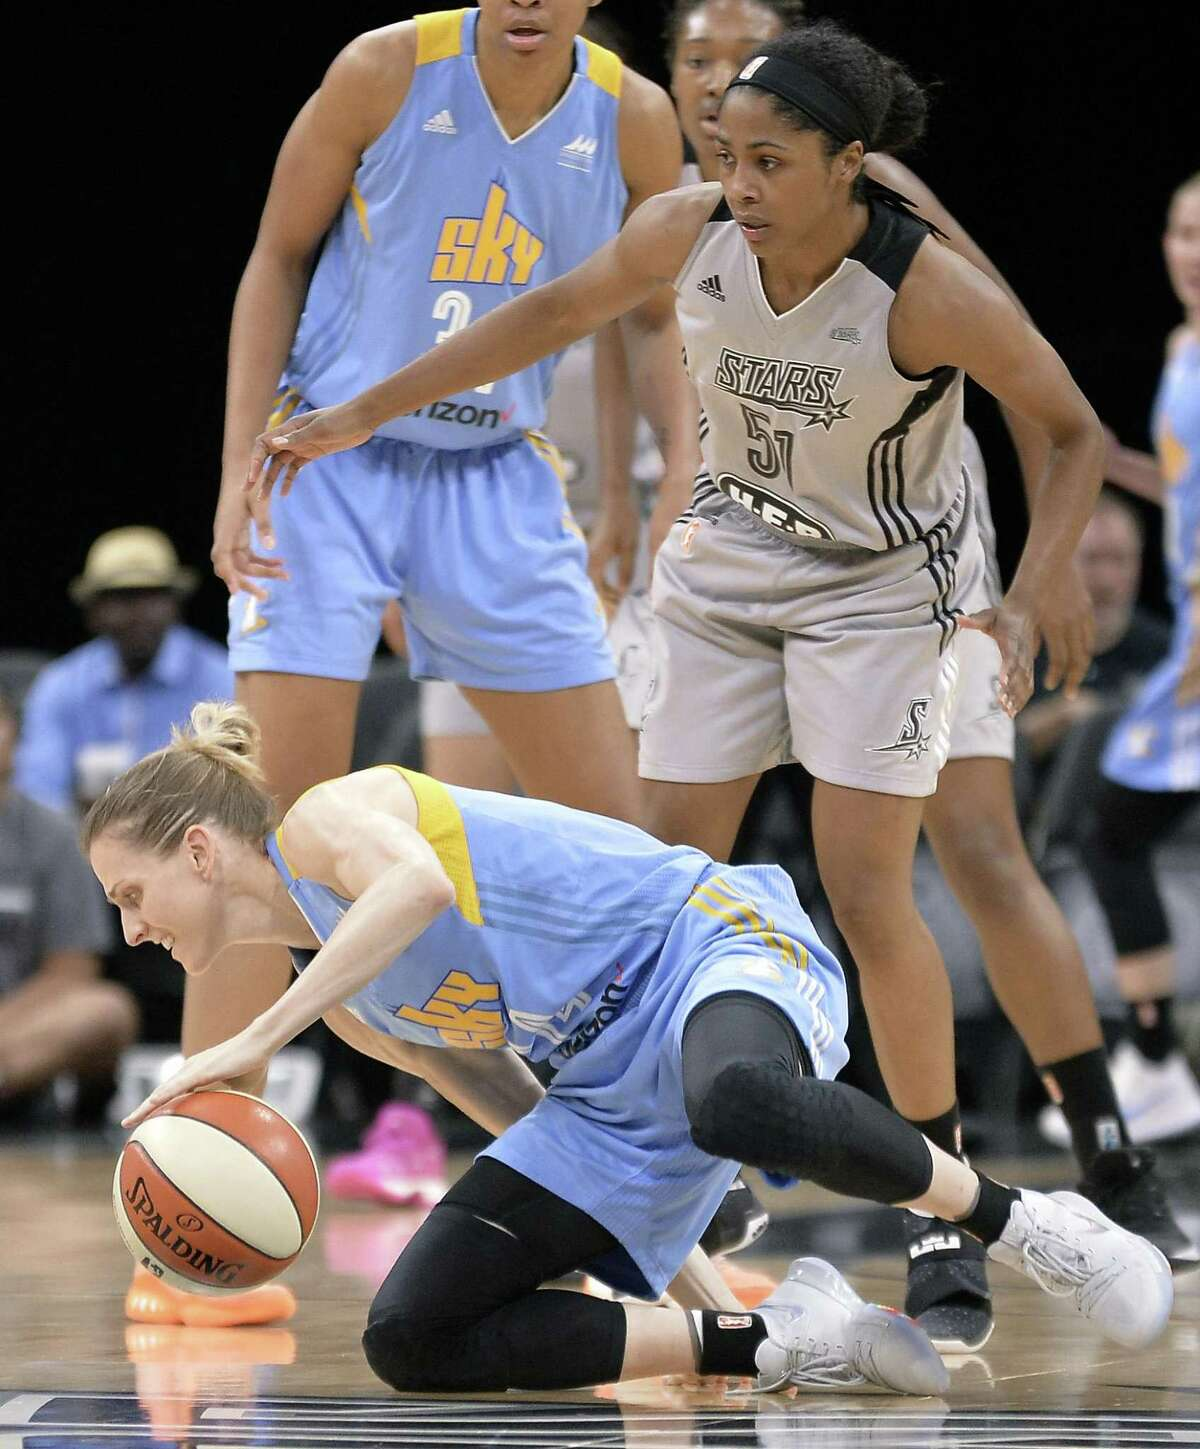 Chicago Sky's Allie Quigley, left, falls after being fouled by San Antonio Stars' Sydney Colson during the first half of a WNBA basketball game, Friday, June 30, 2017, in San Antonio. (Darren Abate/For the Express-News)